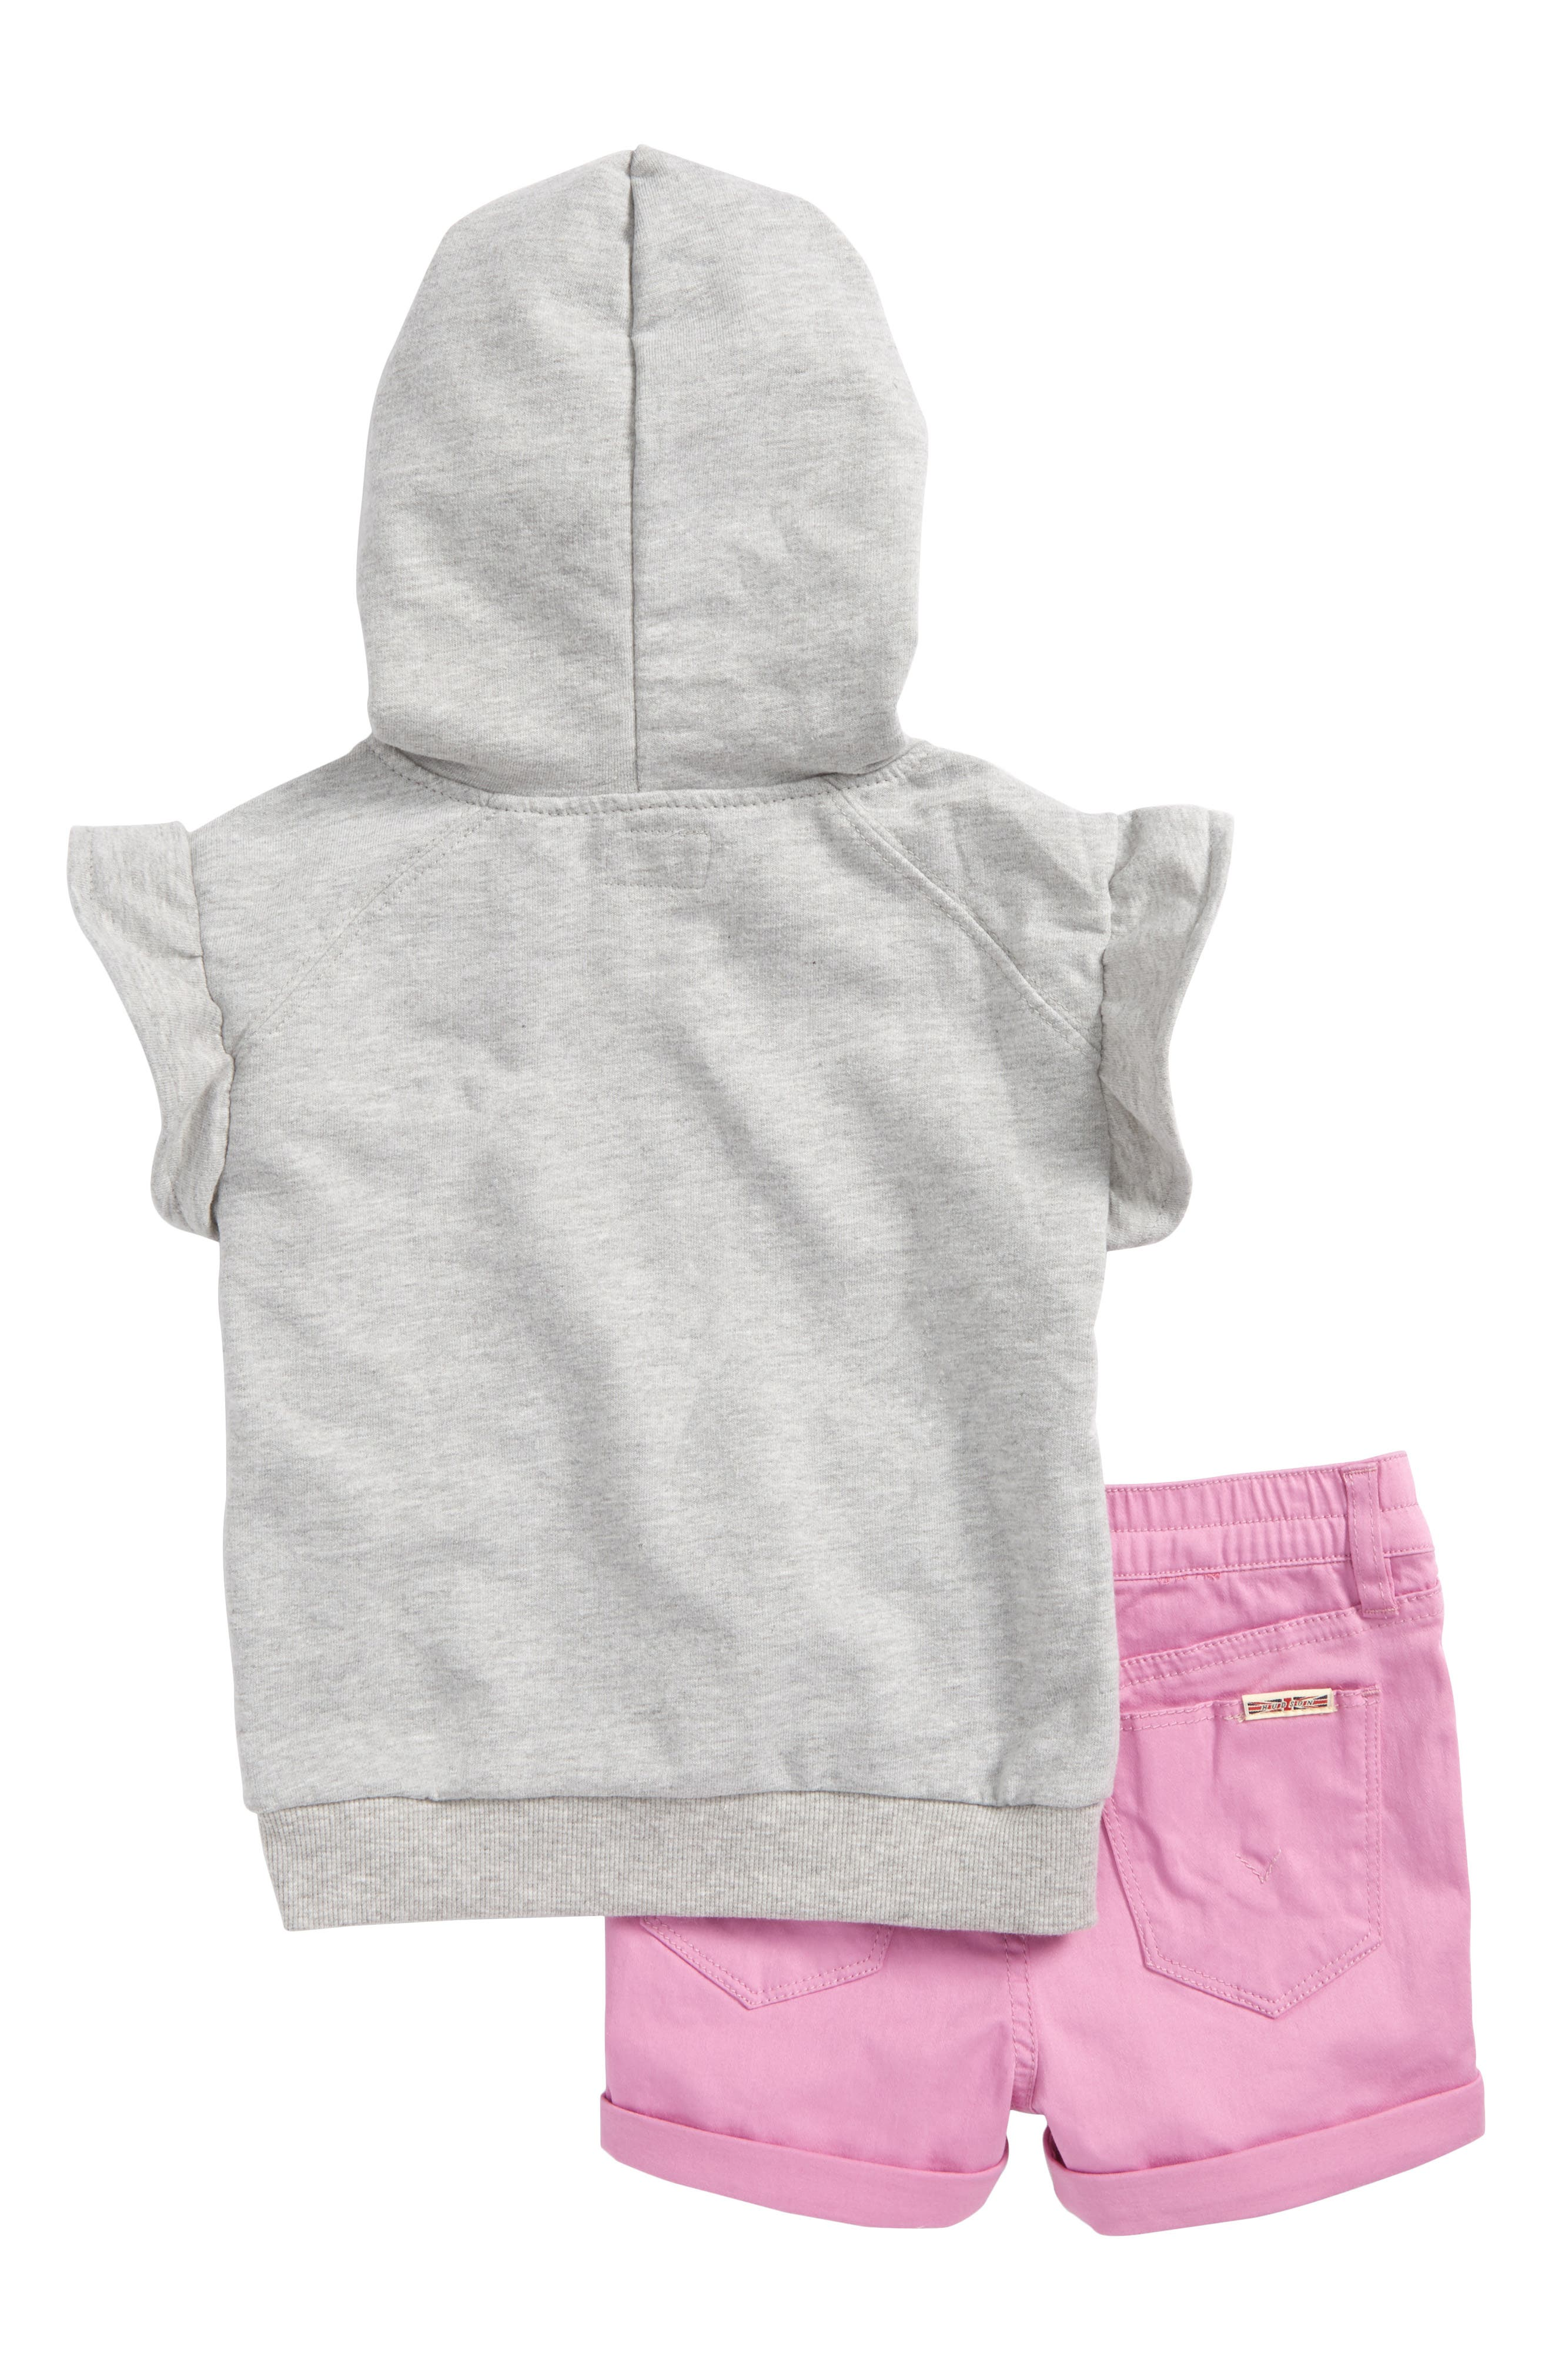 Embroidered Hoodie & Shorts Set,                             Alternate thumbnail 2, color,                             Grey Heather